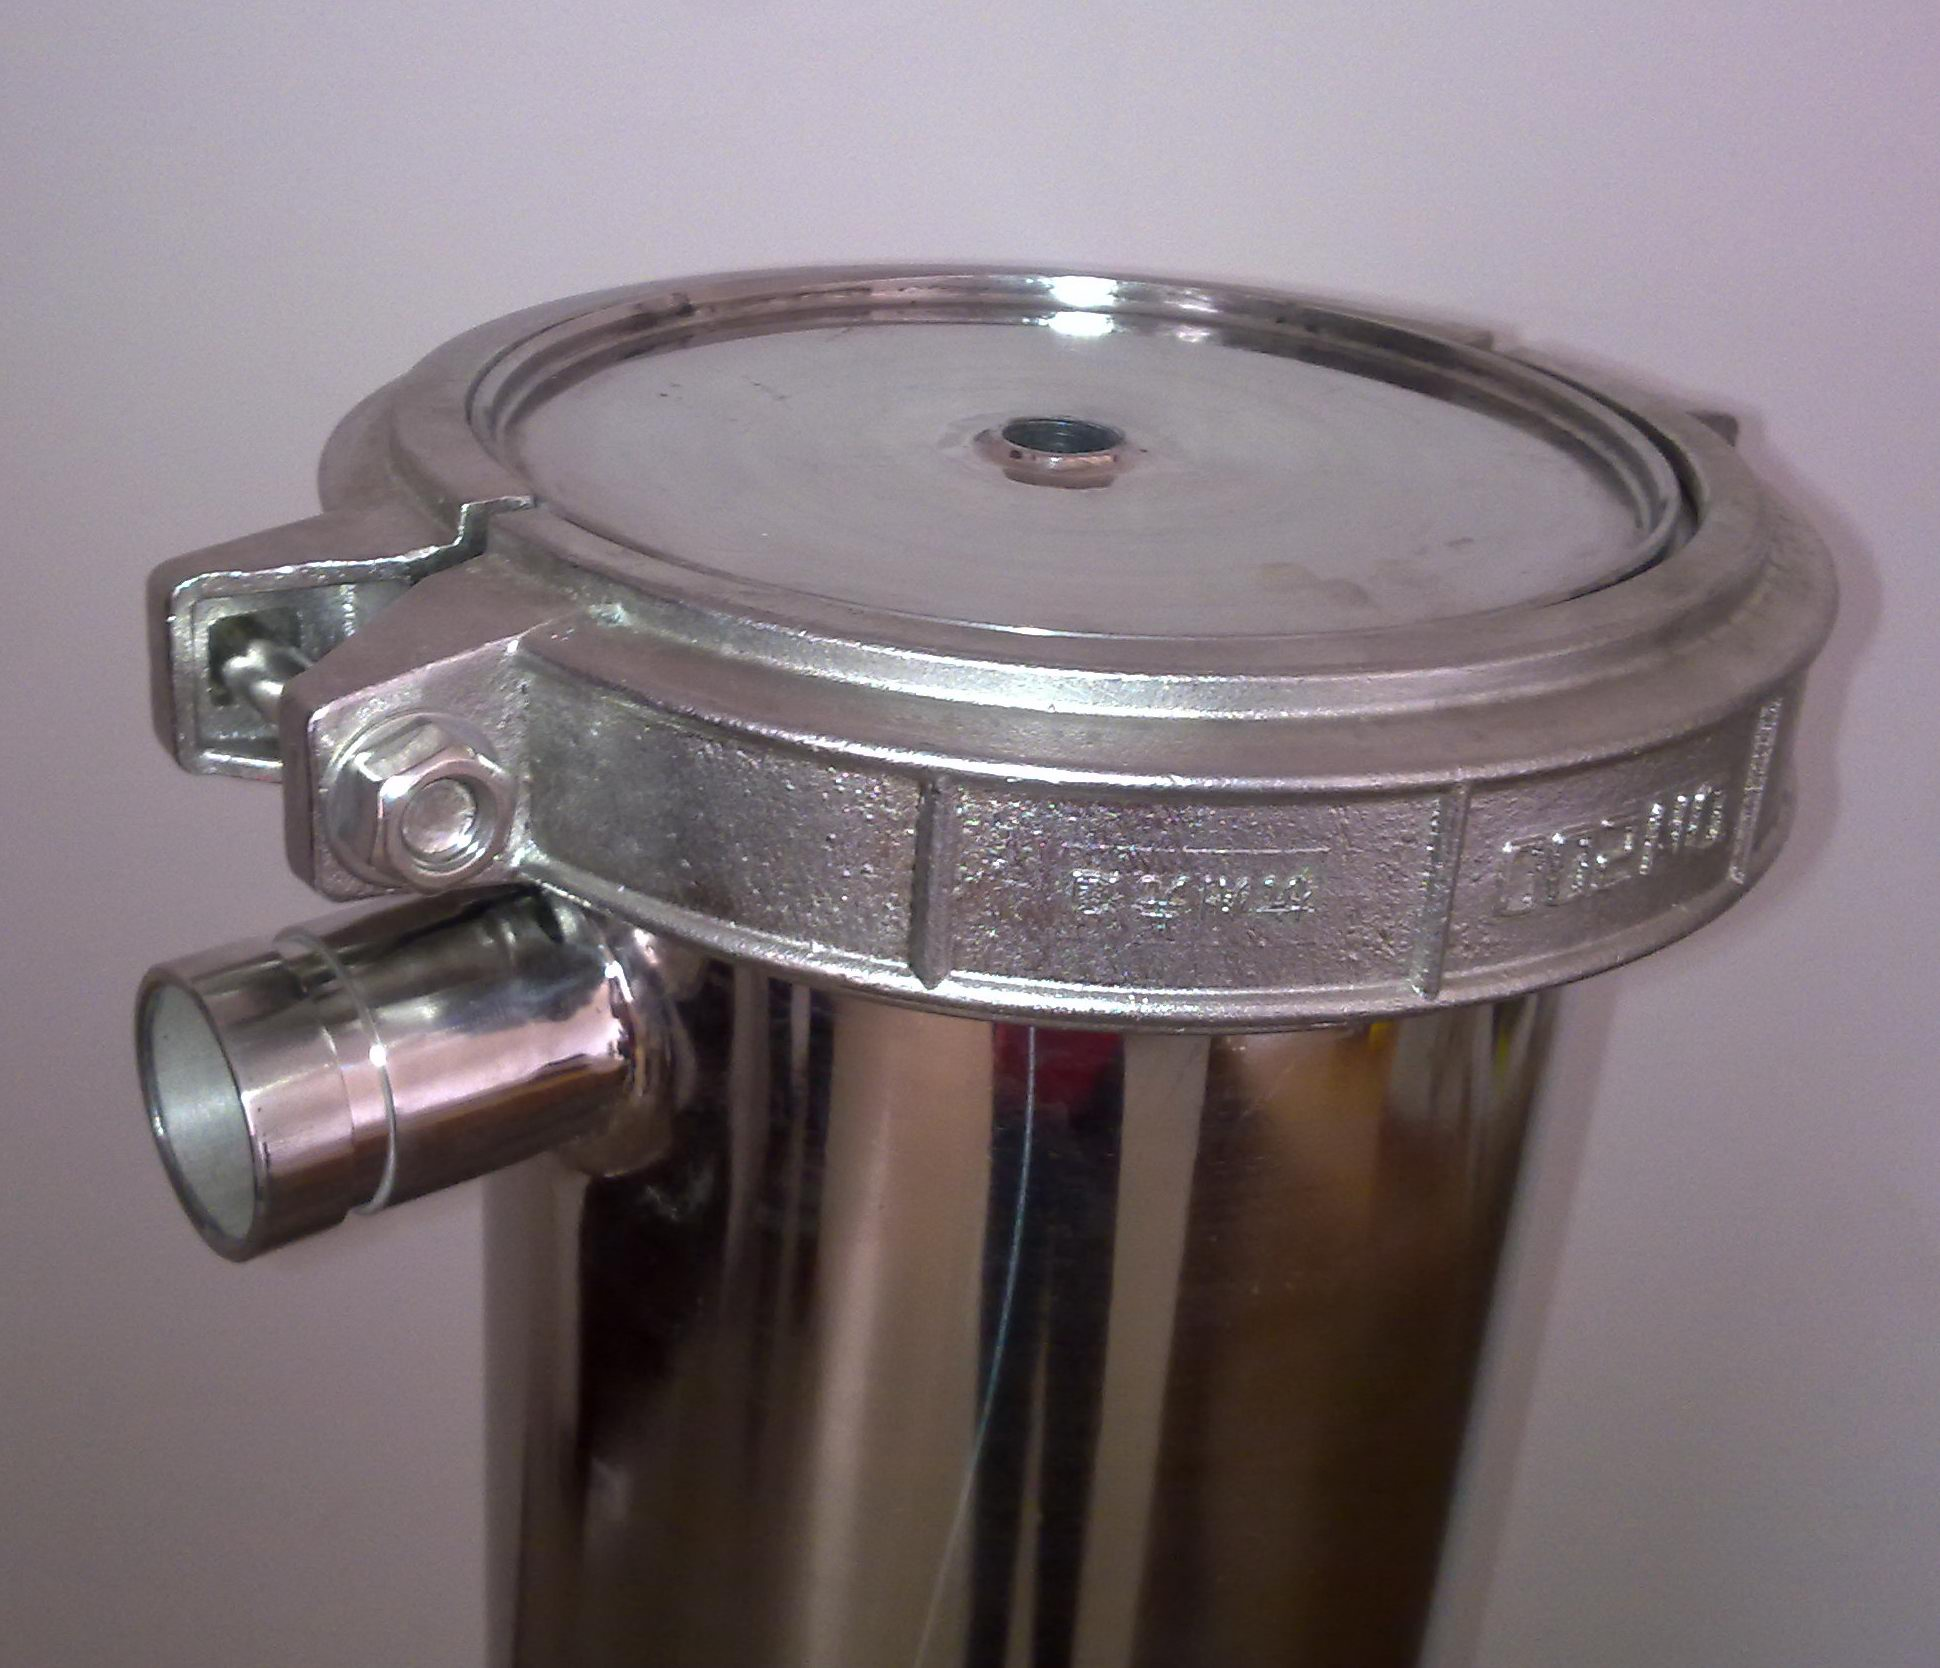 Stainless Steel Housing for Sanitary Use